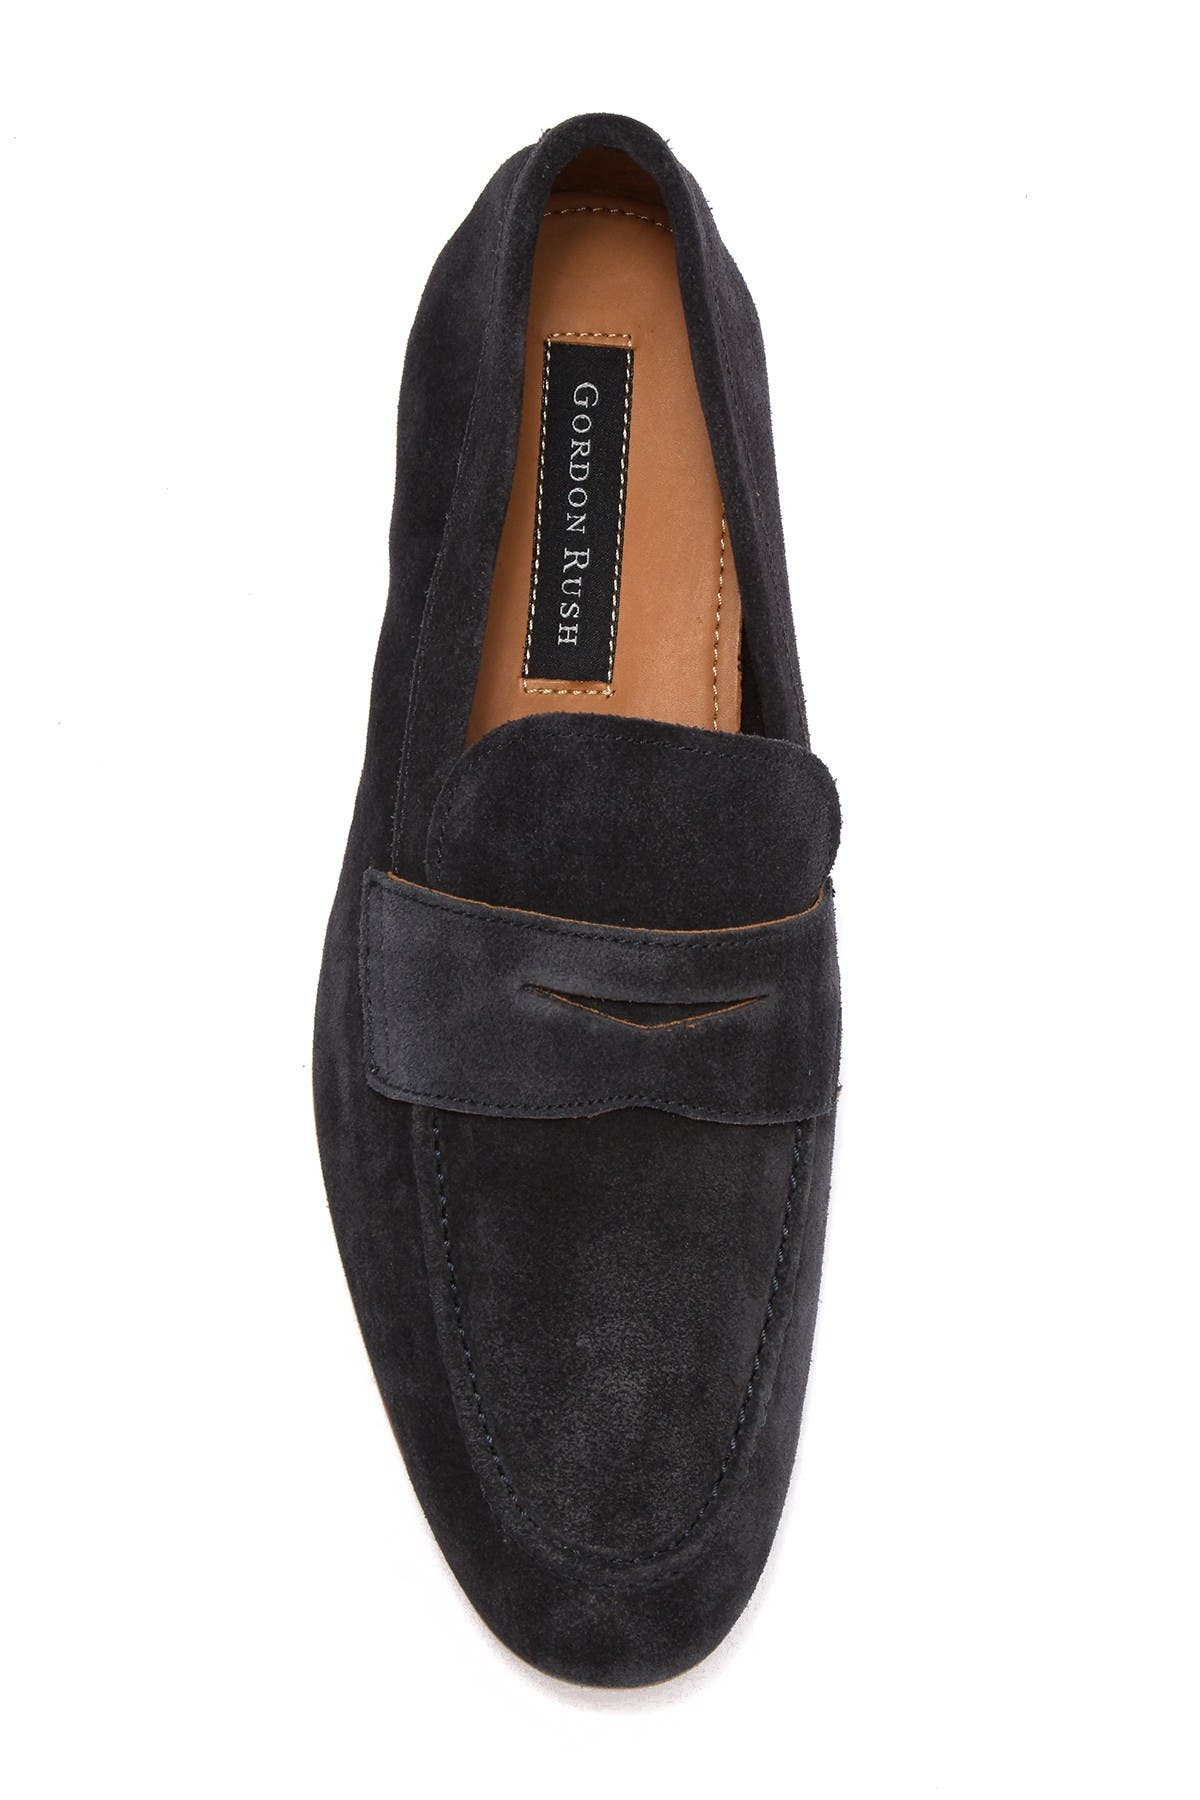 Gordon Rush | Wilfred Penny Loafer